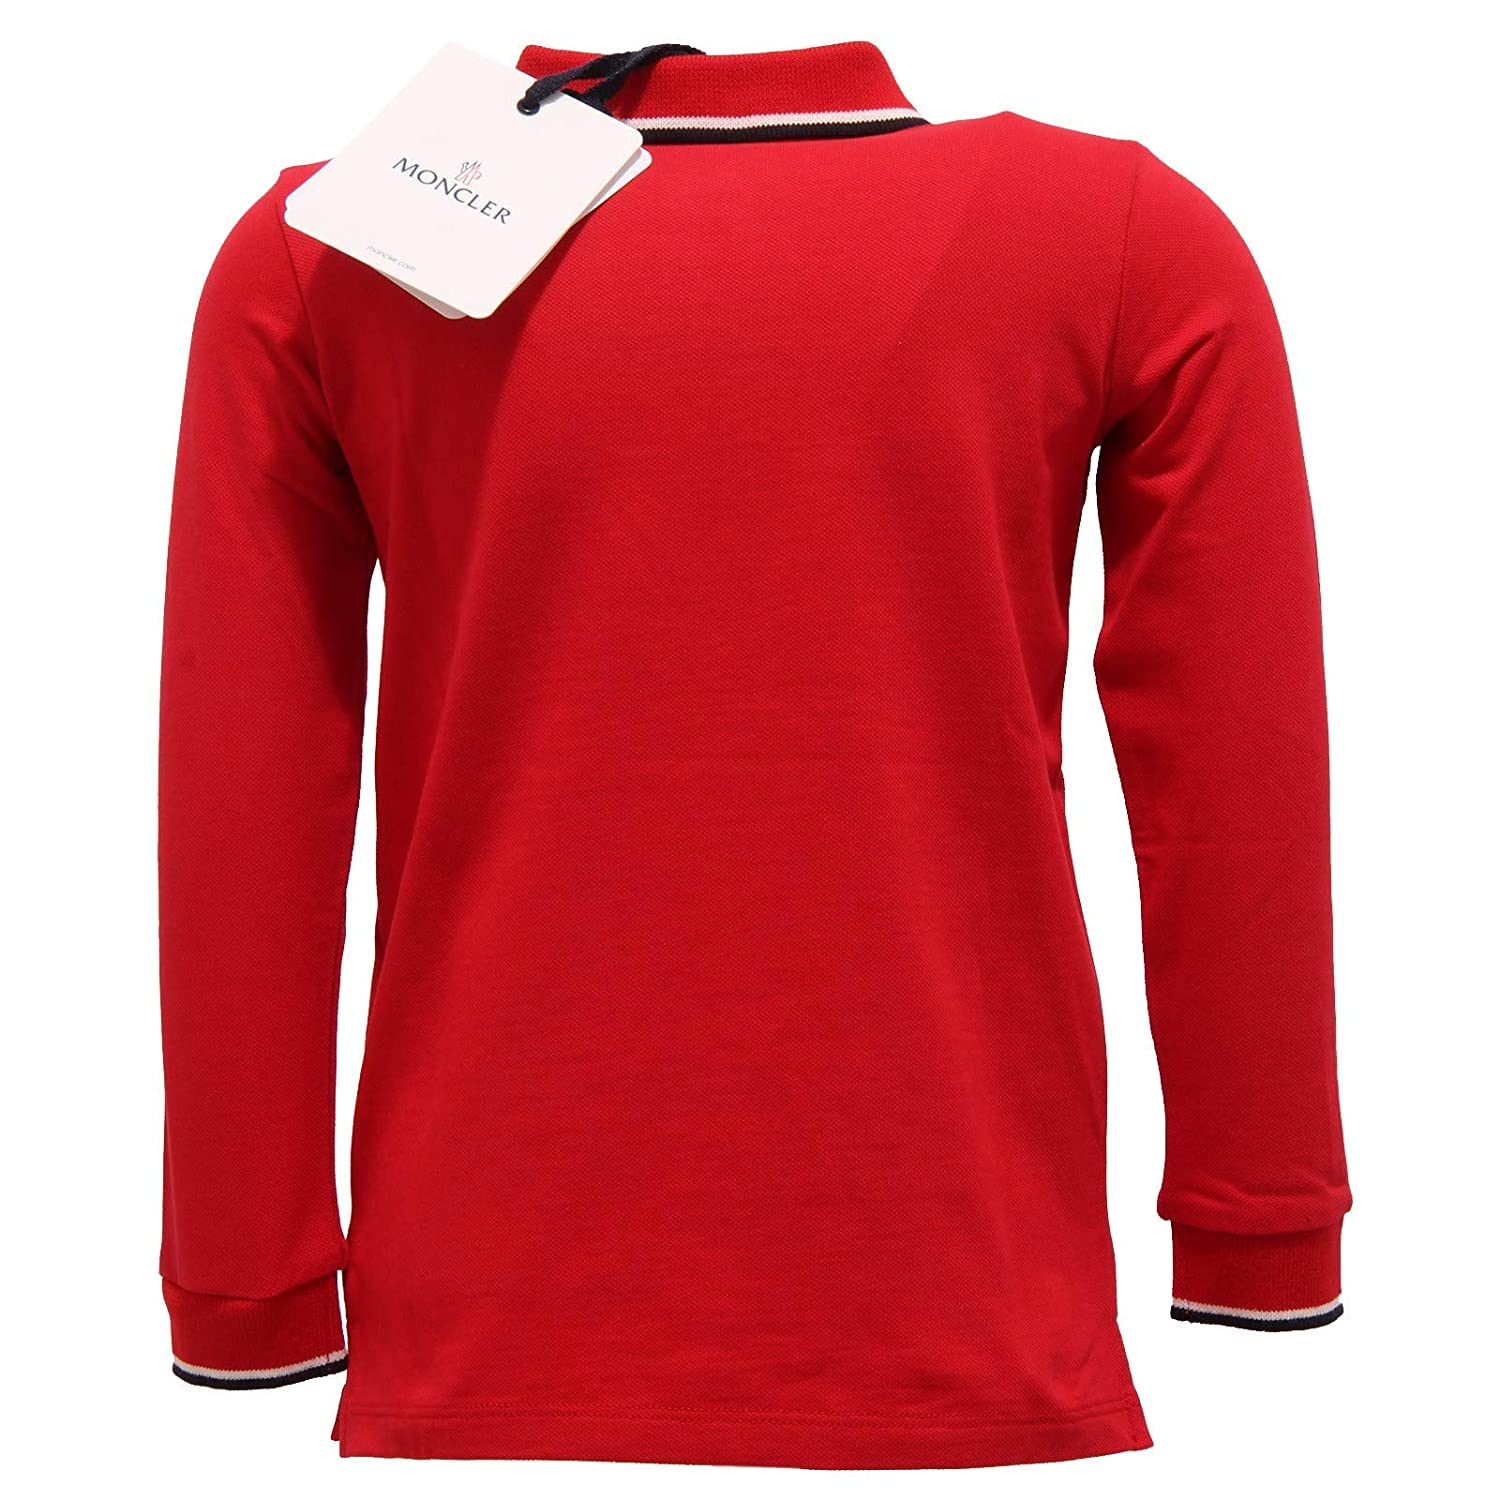 MONCLER 7394Y Polo Bimbo Boy Red Cotton Long Sleeve Polo t-Shirt ...